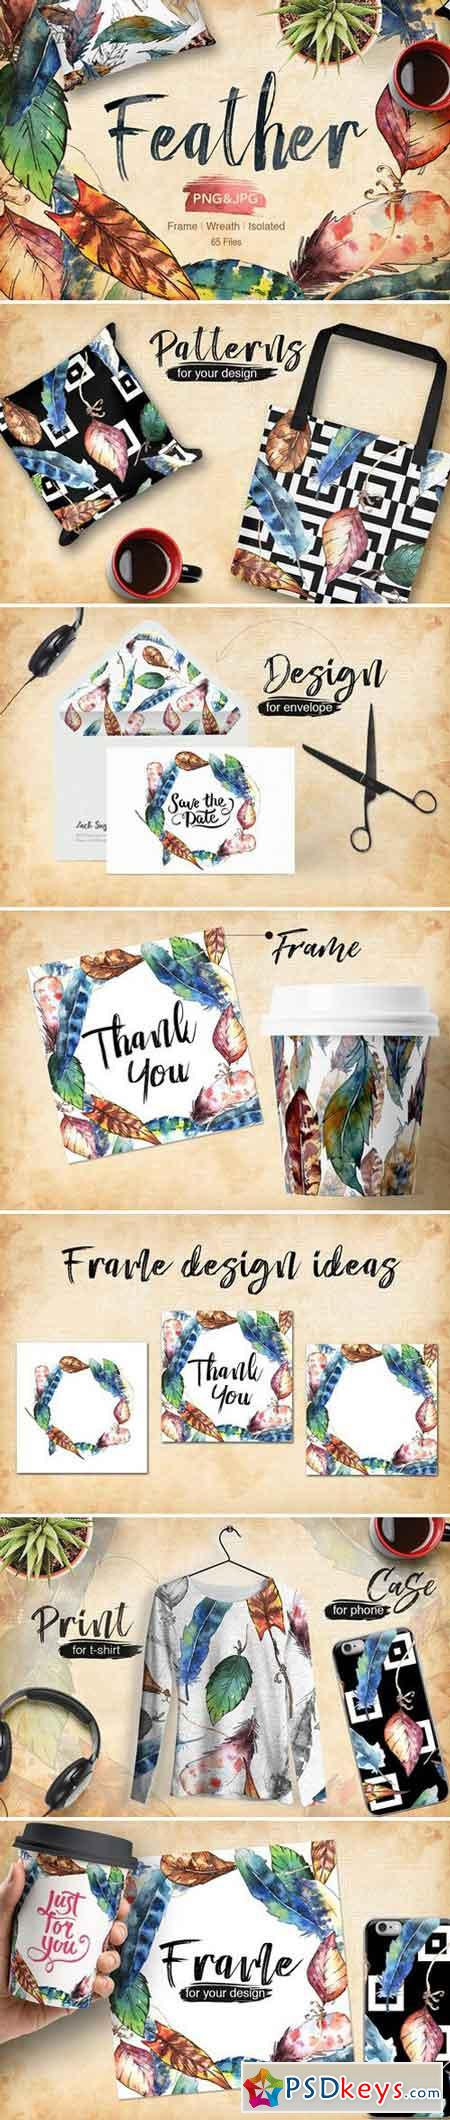 Feather bird PNG watercolor set 1942059